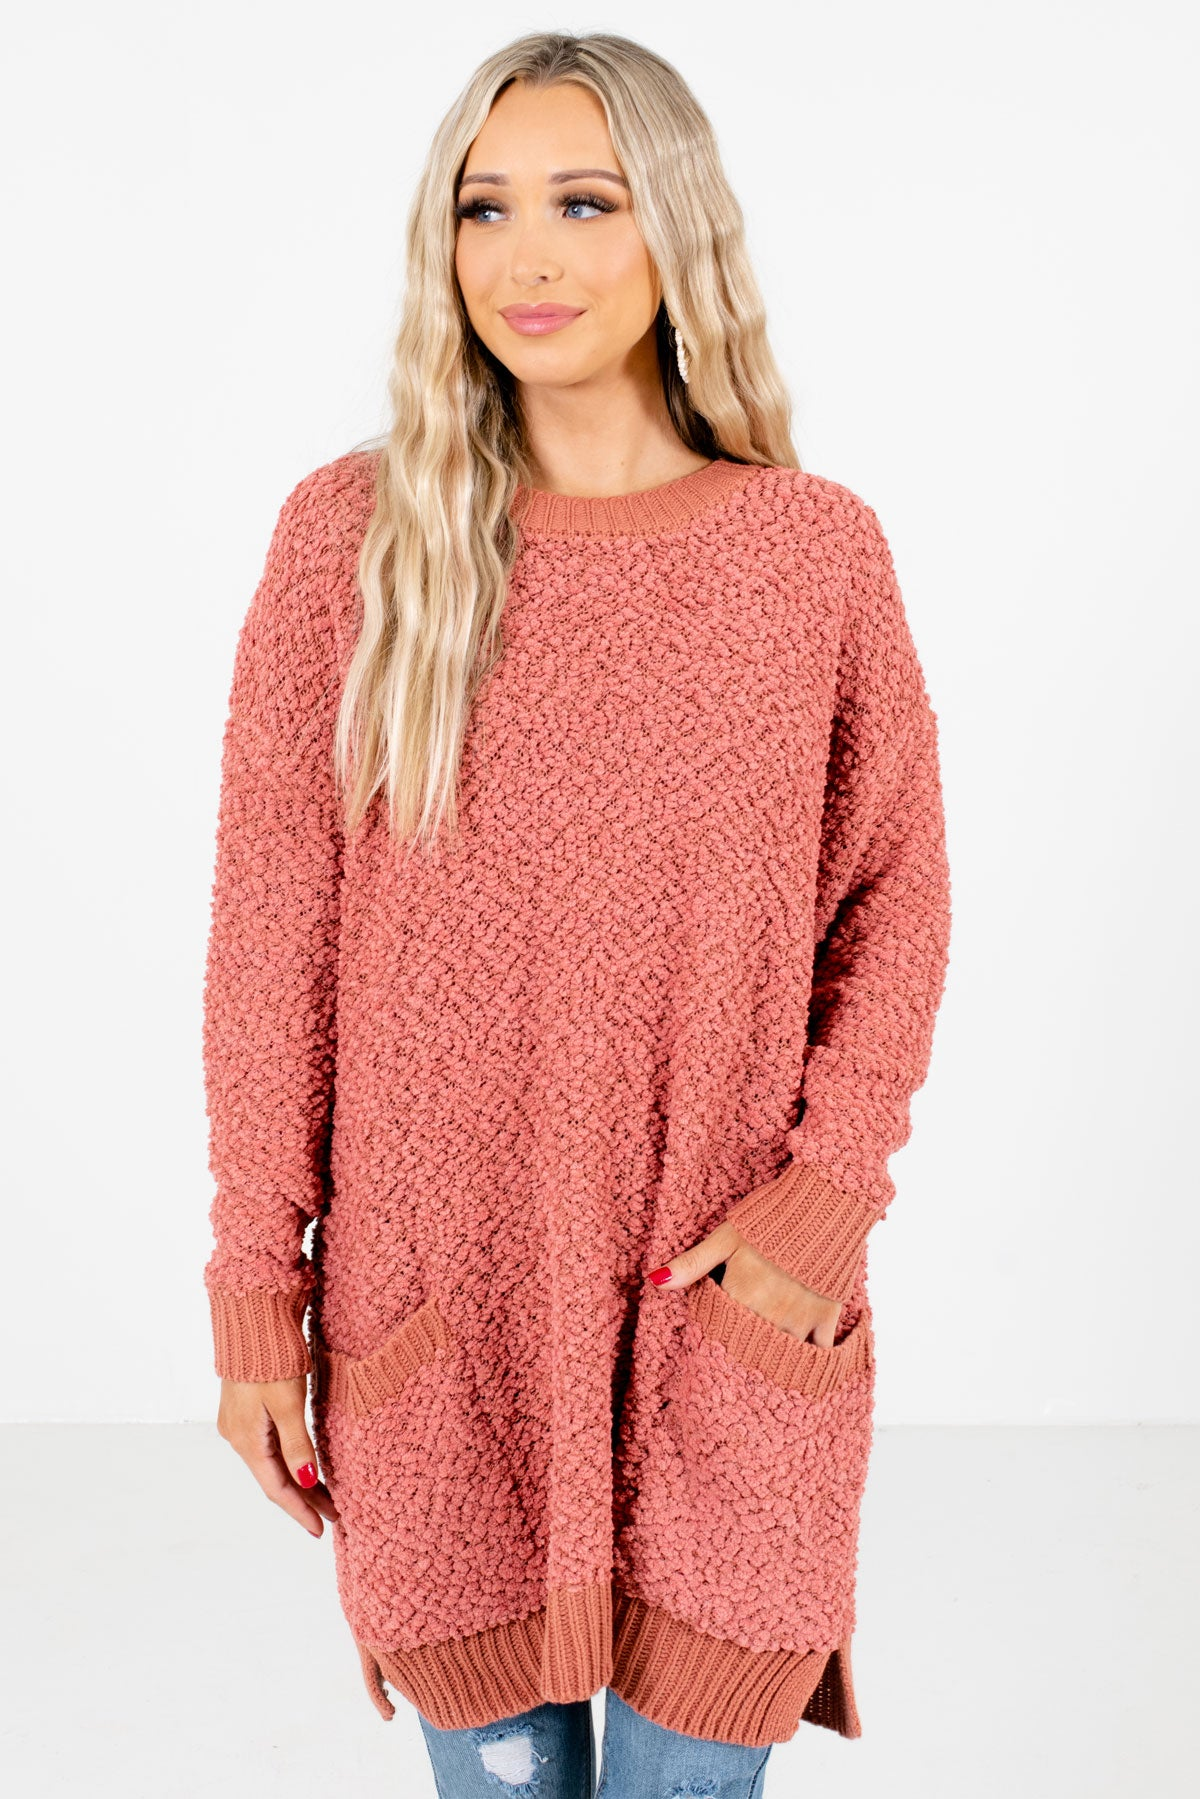 Coral Pink High-Quality Popcorn Knit Material Boutique Sweaters for Women